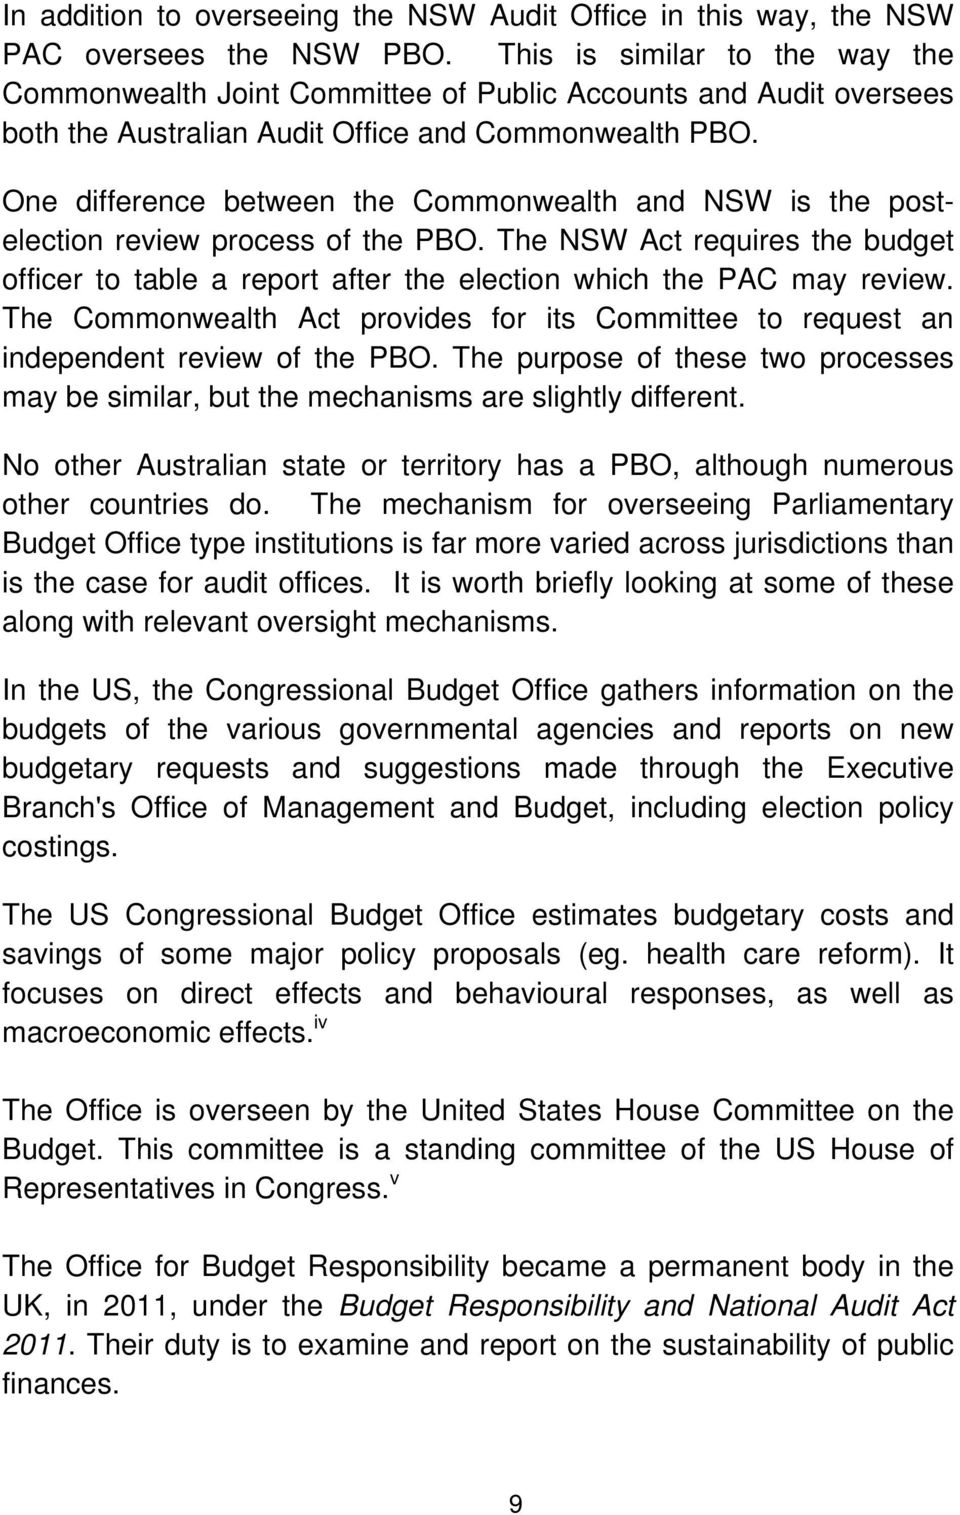 One difference between the Commonwealth and NSW is the postelection review process of the PBO. The NSW Act requires the budget officer to table a report after the election which the PAC may review.